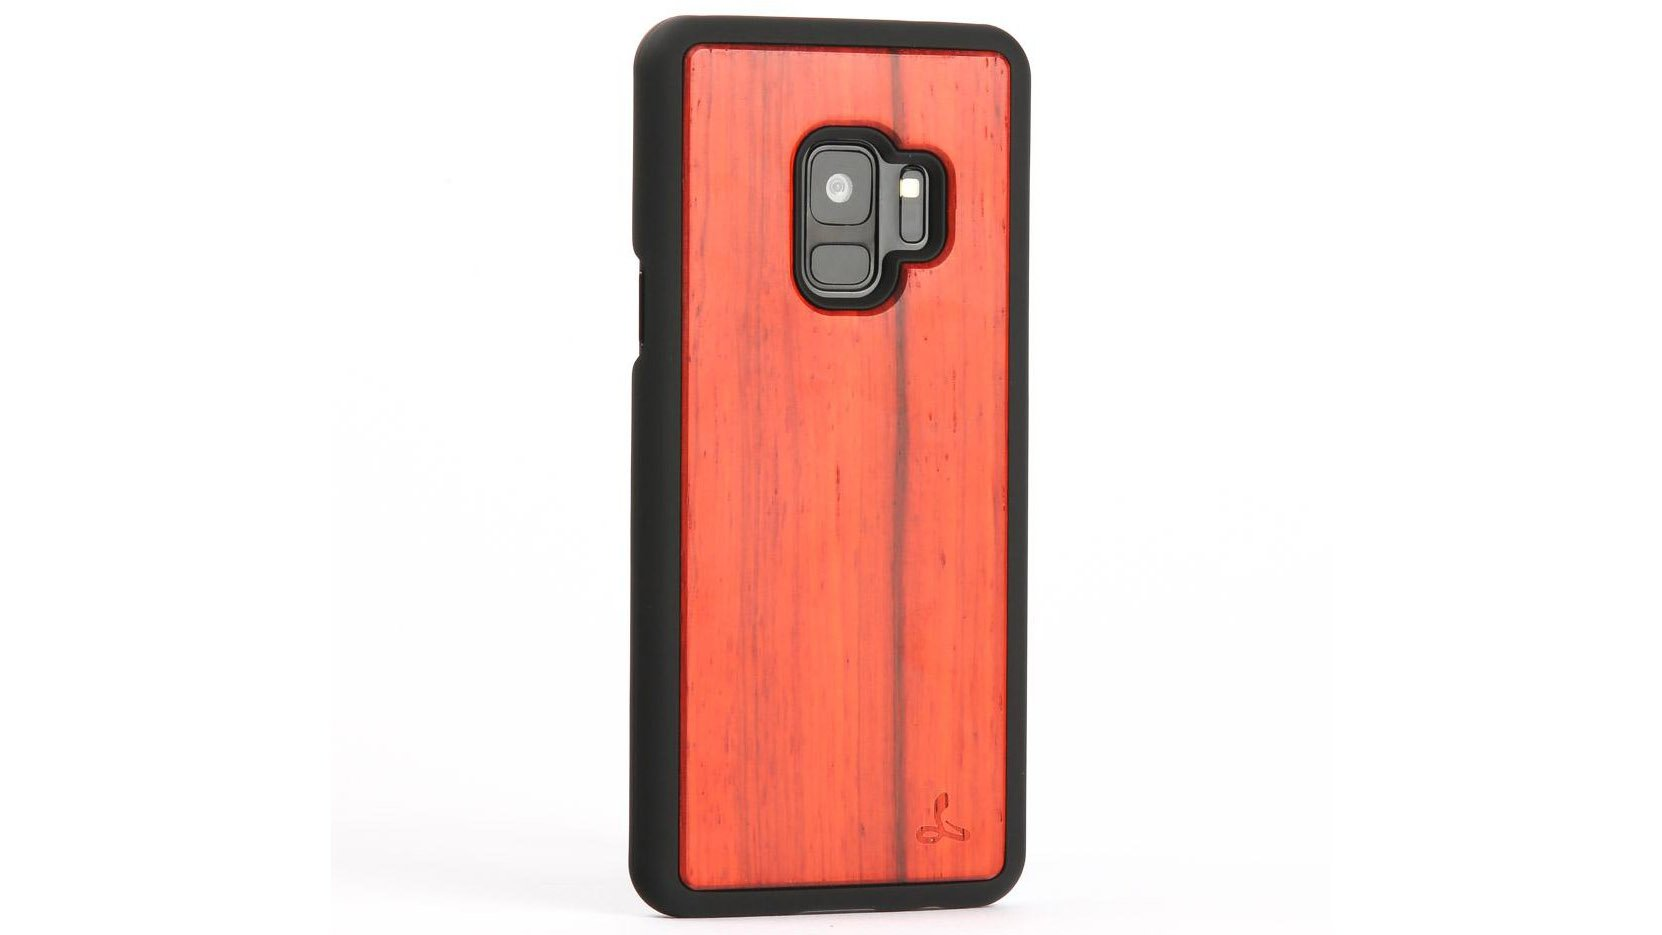 Best Samsung Galaxy S9 Cases Protect Your And Case Iphone Xs Plus Spigen Anti Shock With Stand Tough Armor Casing Black Snakehives Wooden Back Feature A Rubberised Outer Grip Inner Lining To Provide Sturdy Protection